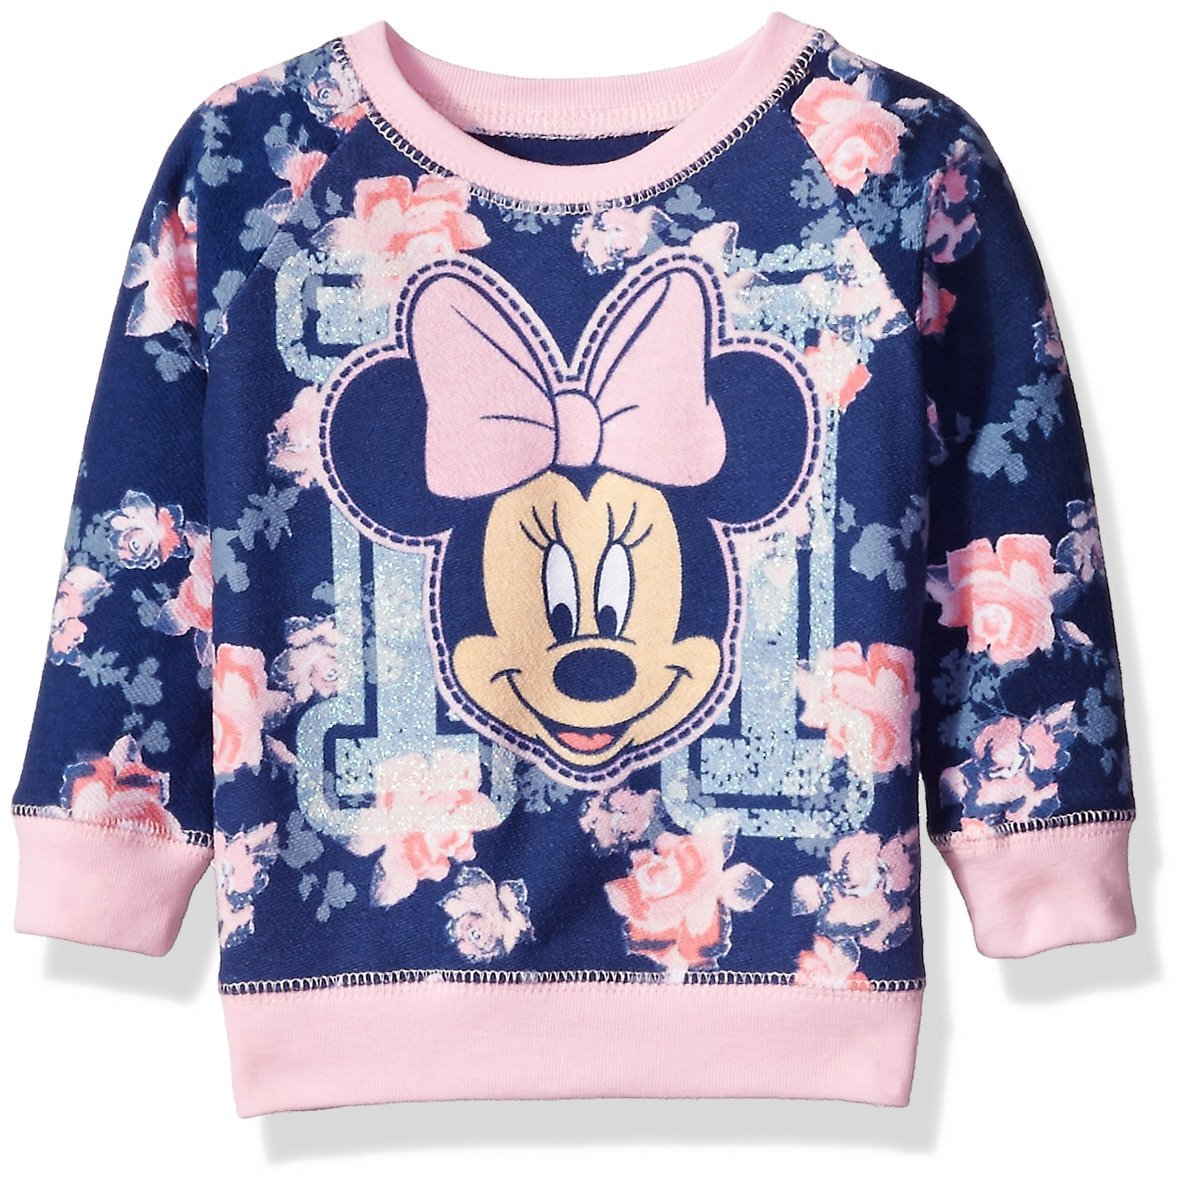 Disney Little Girls' Toddler Minnie Mouse Floral All Over Print French Terry Sweatshirt, Navy, 3T